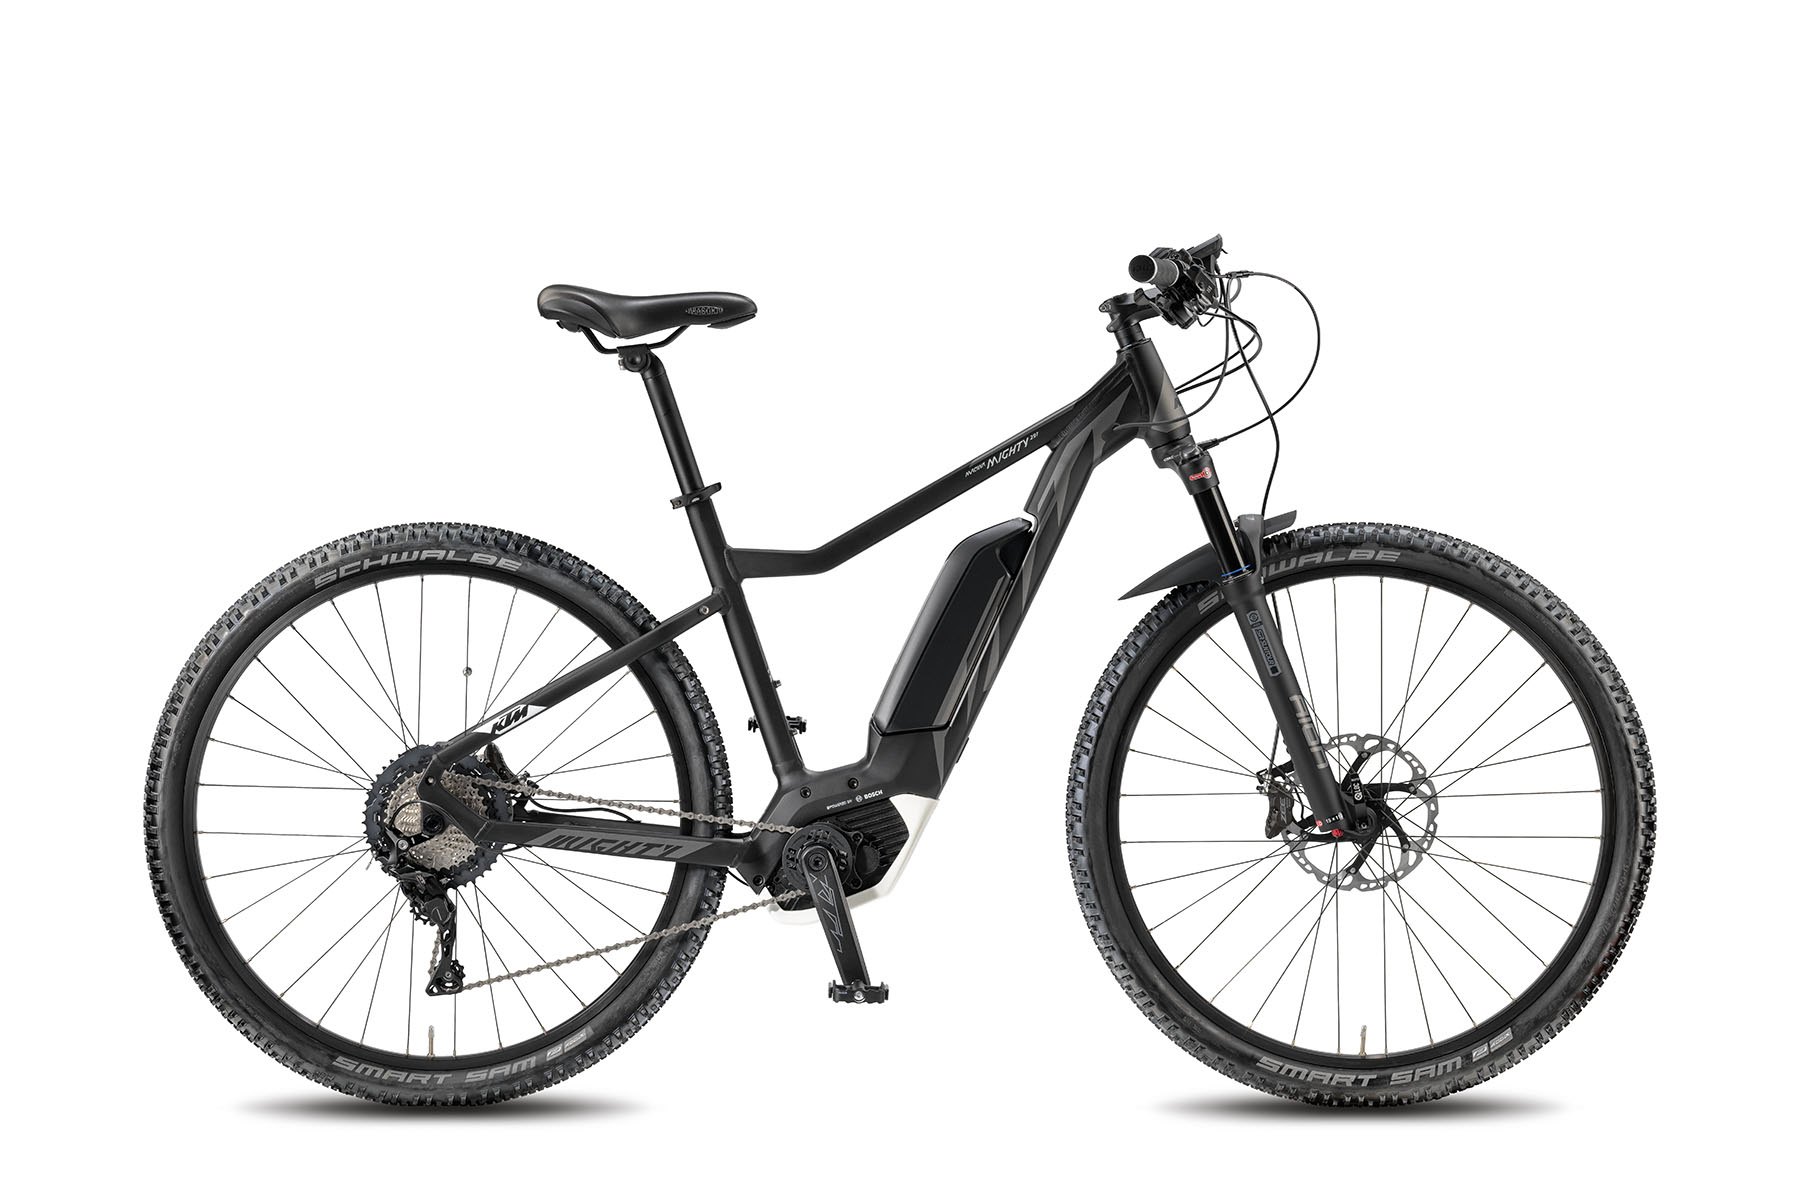 Bicicleta KTM ELECTRICA MACINA MIGHTY 291 – 2018